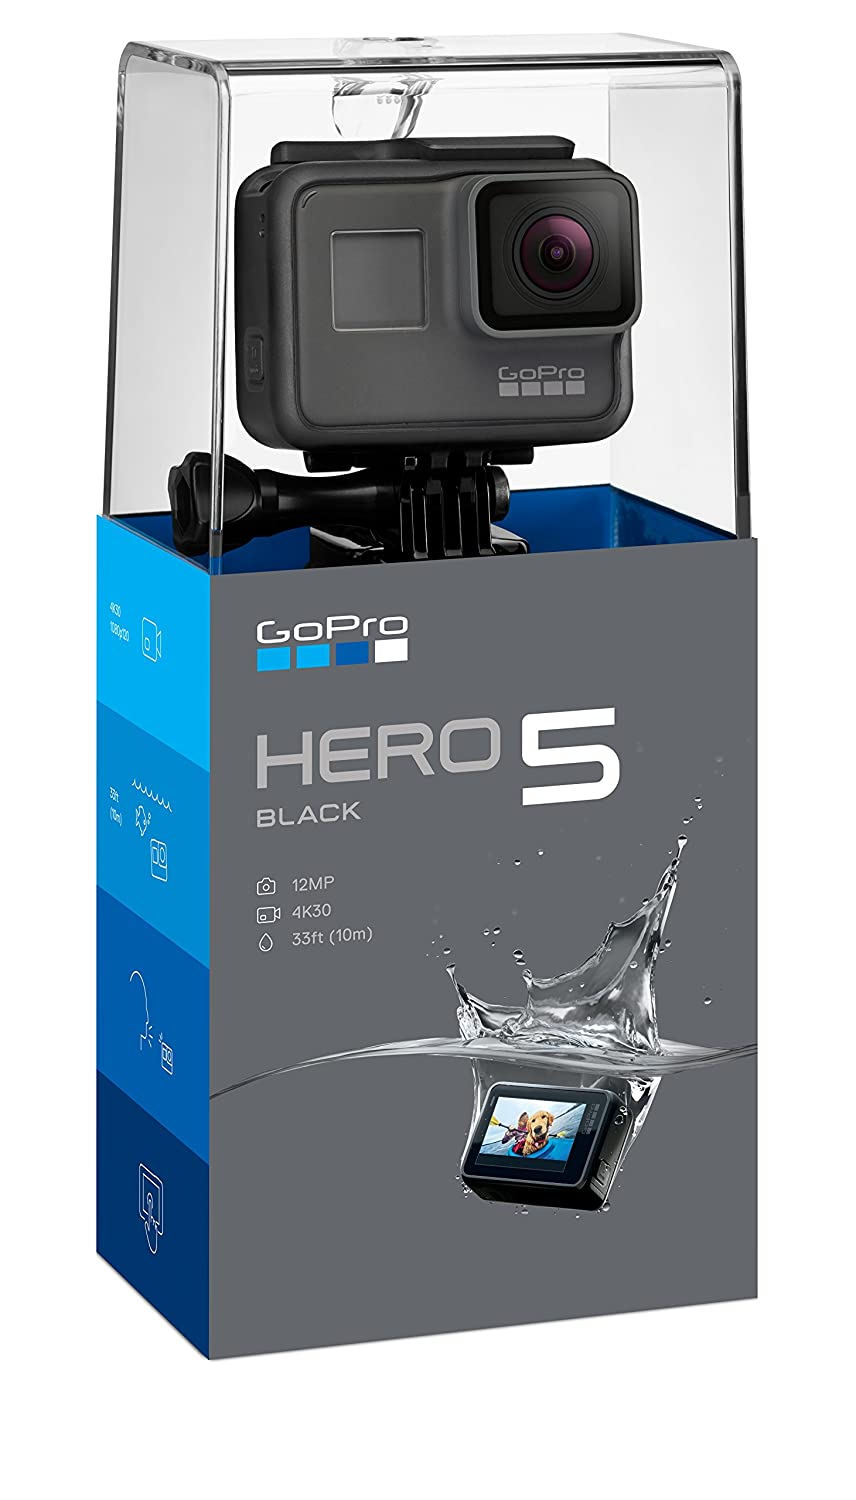 GoPro HERO5 Black Waterproof 4K Sports Camera with GPS & Smart Voice Control